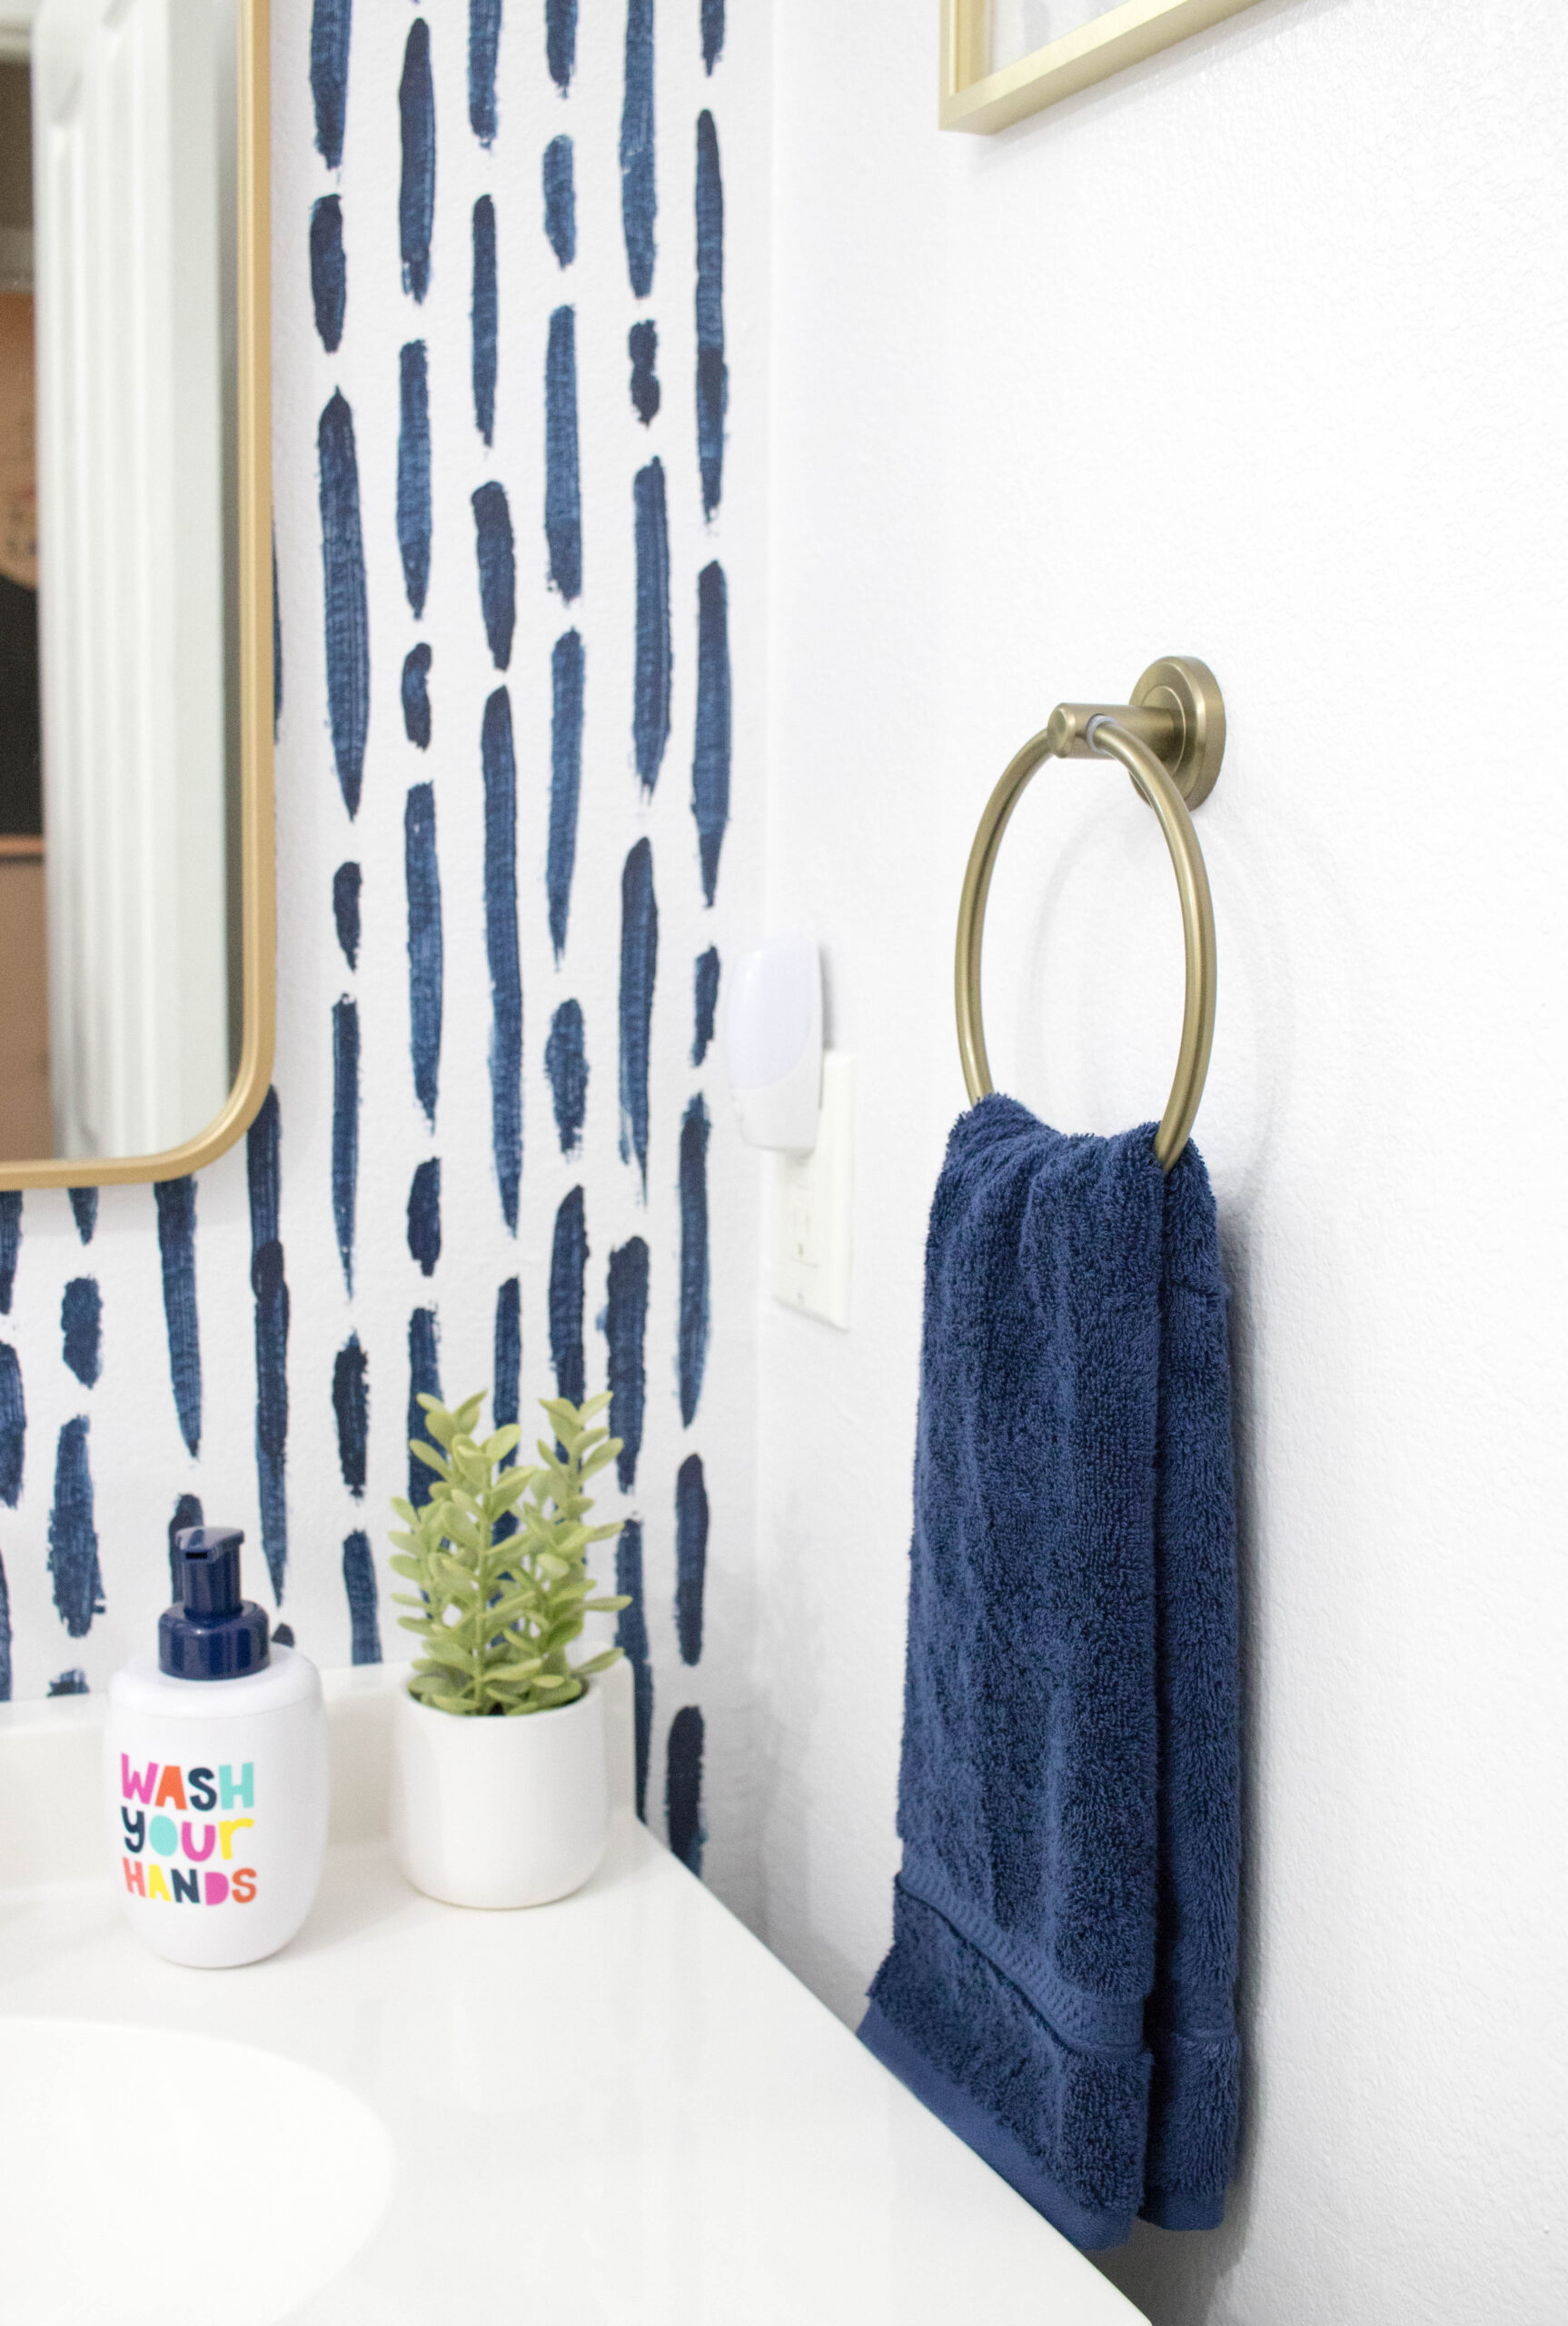 gold and navy bathroom decor #bathroomdecor #bathroomrefresh #diyaccentwall